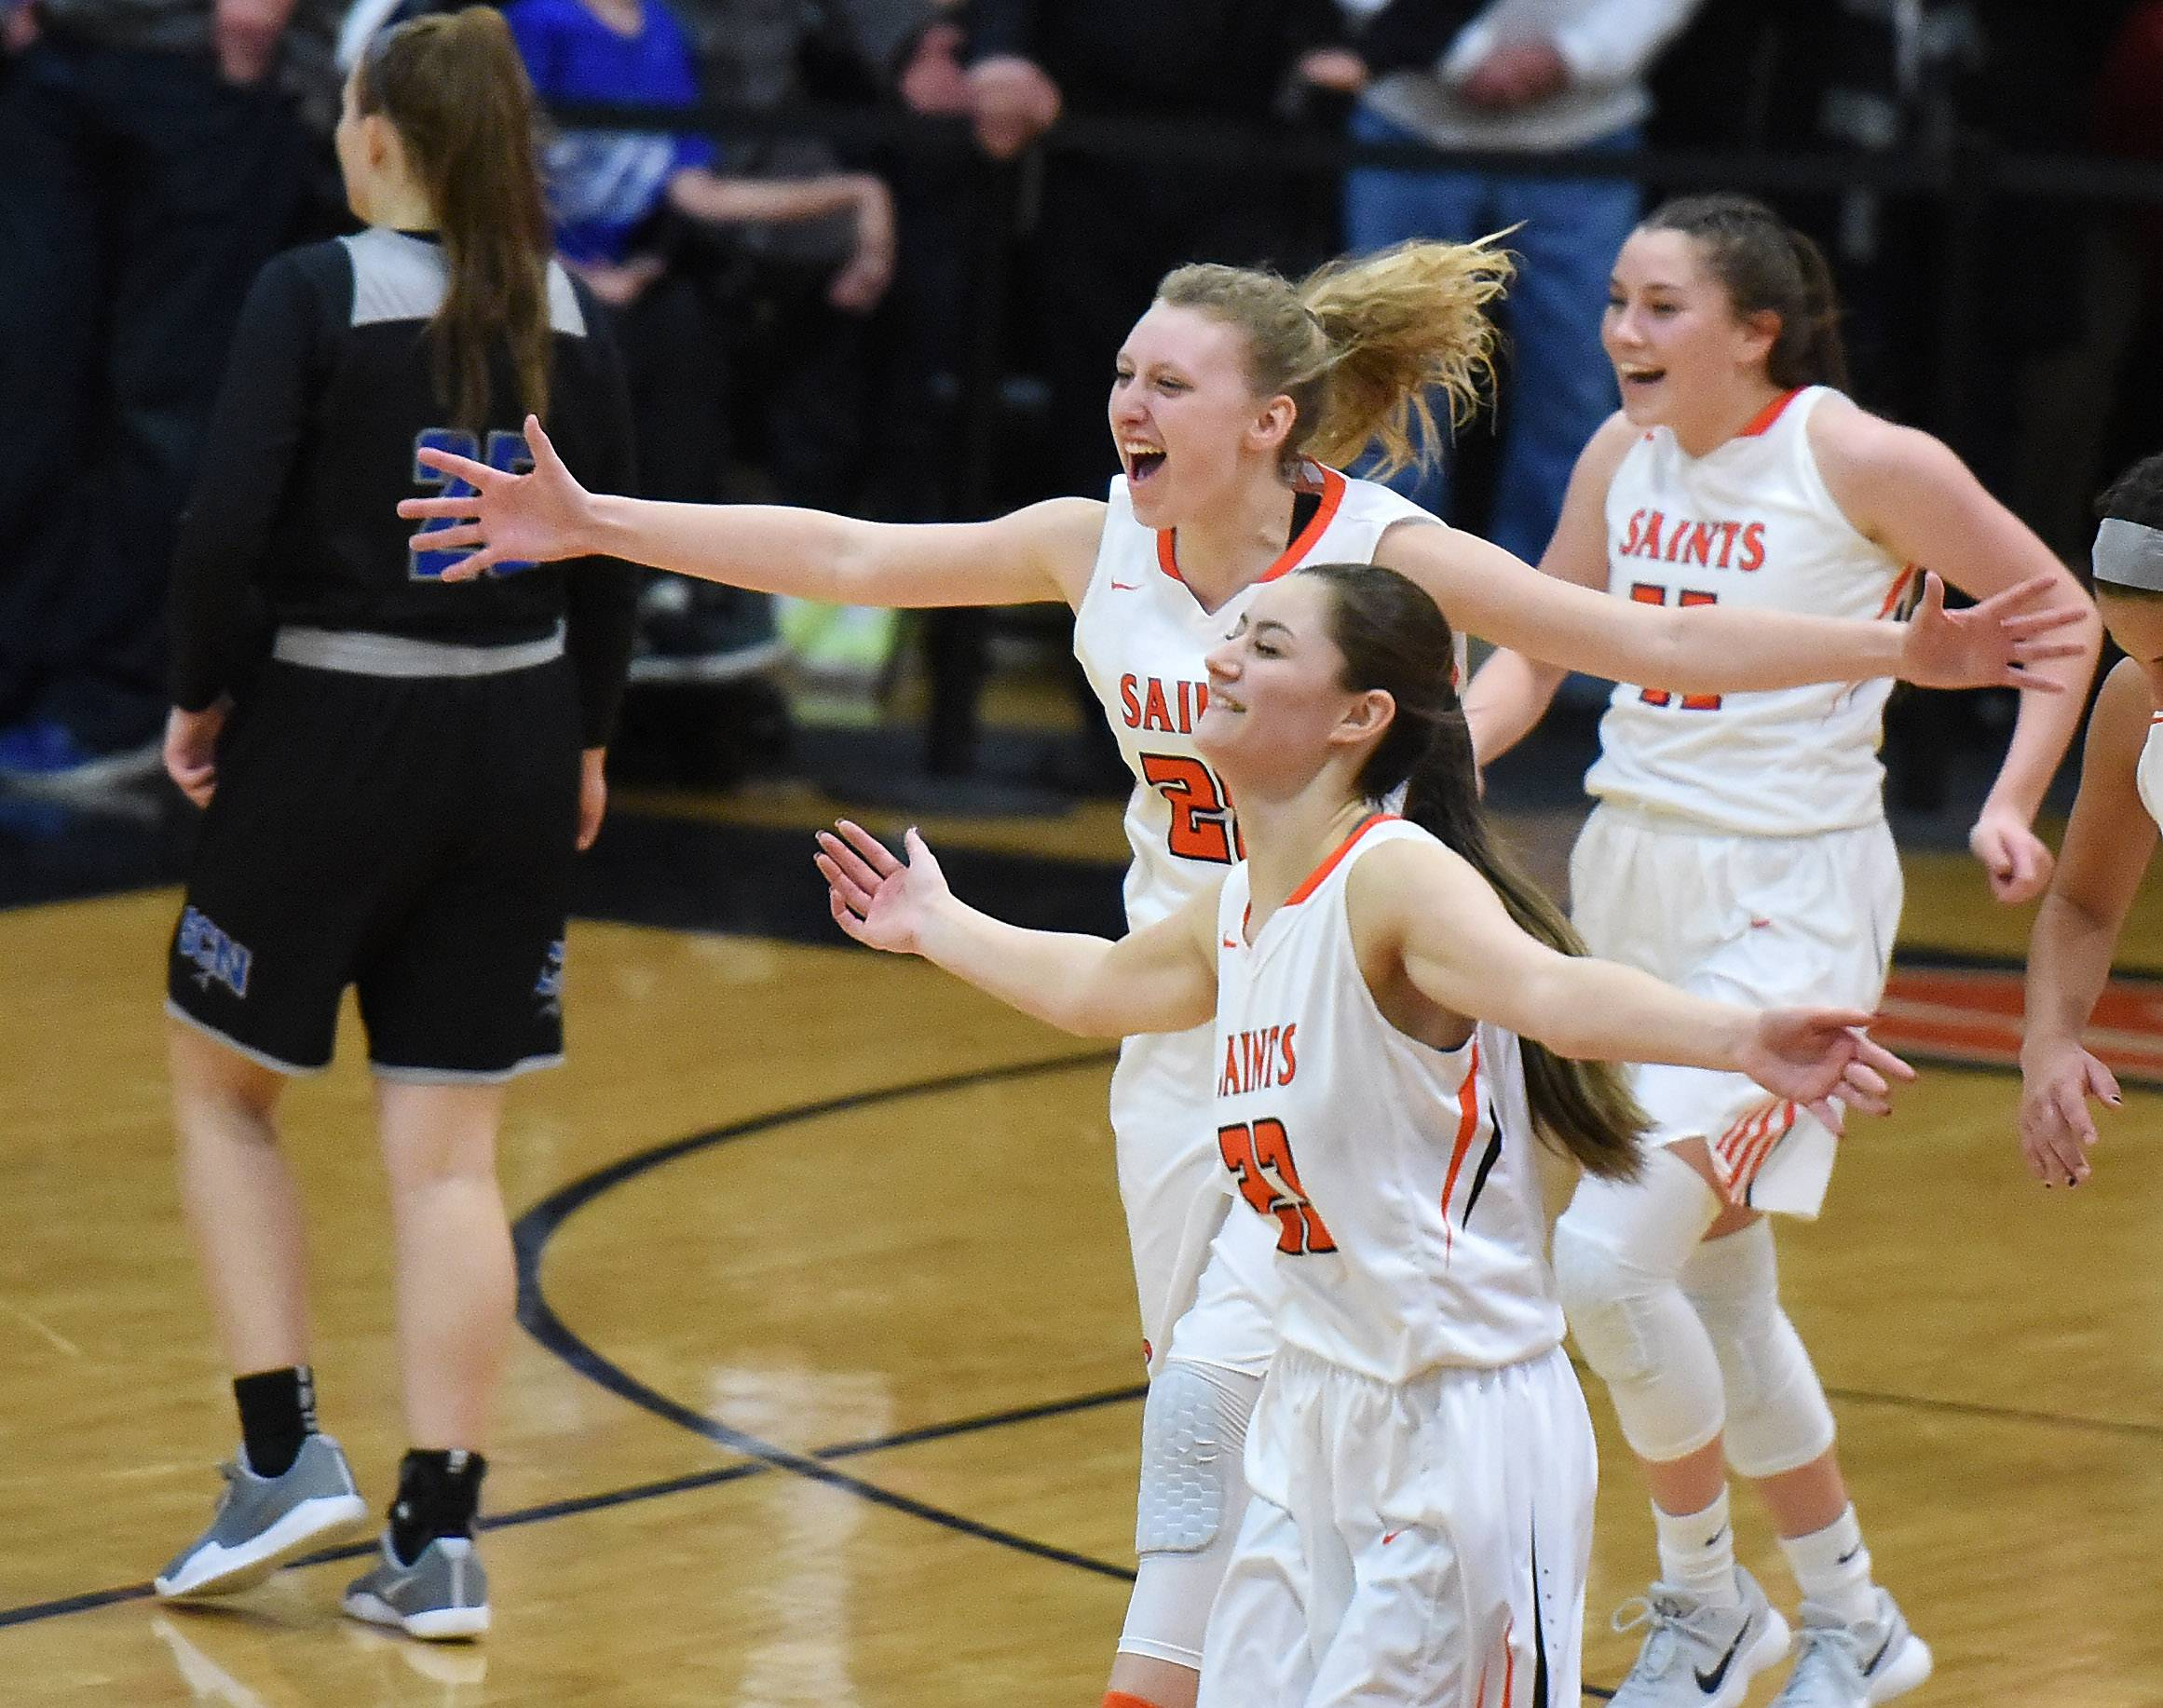 St. Charles East players, including Alexis Kiefer, top middle (20) and Katherine Weinzirl, bottom (23), celebrate after their win over rival St. Charles North during Friday's game at East.